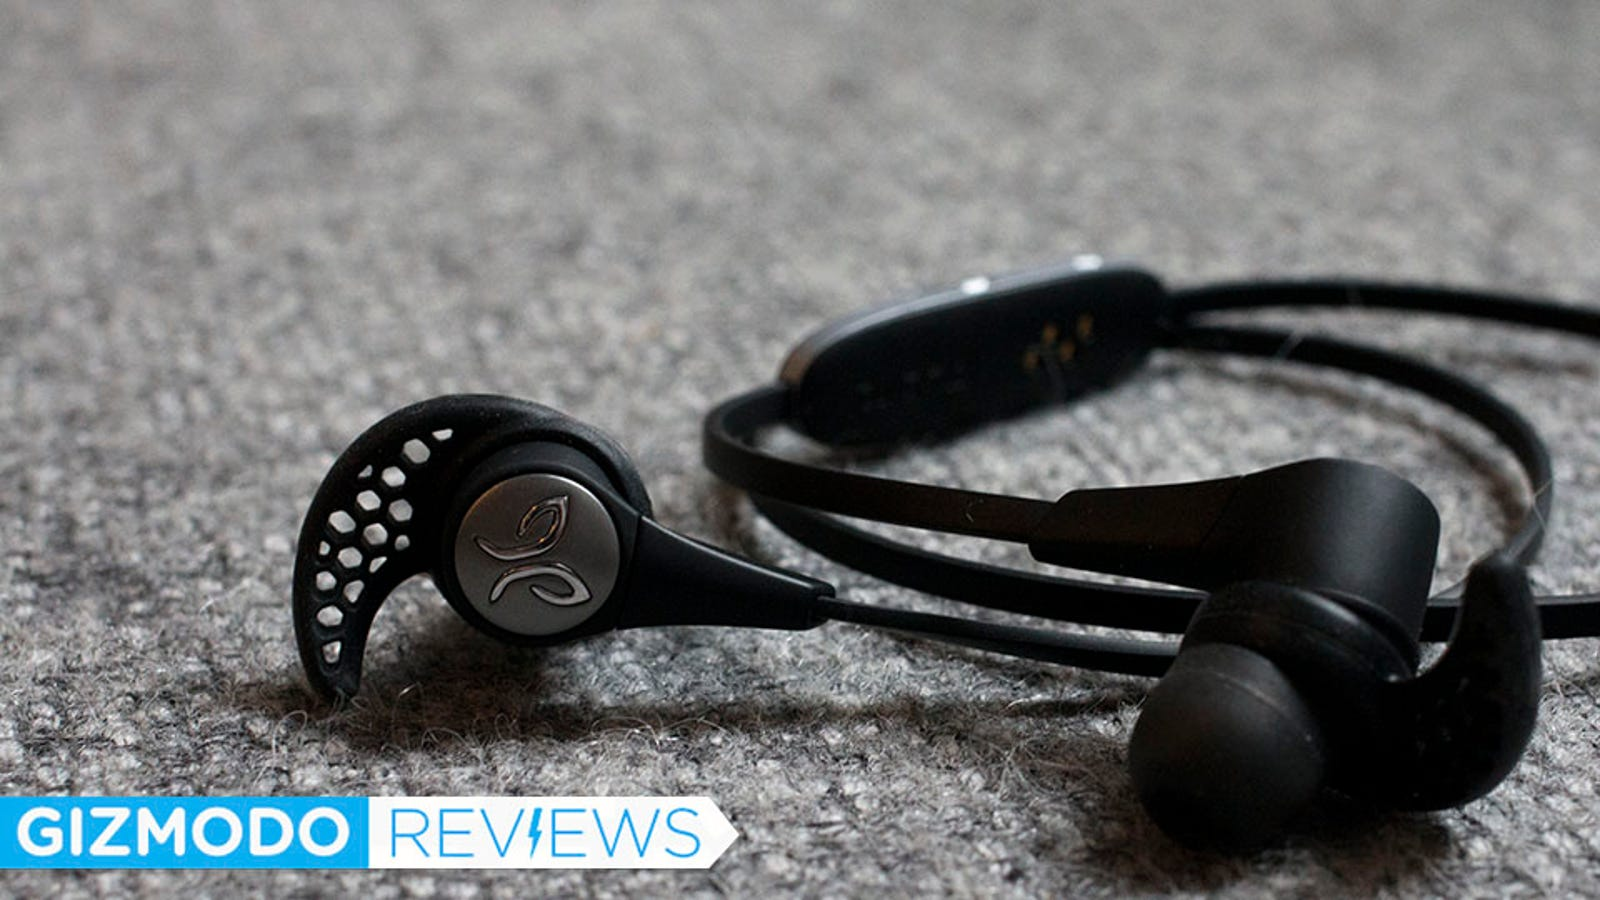 skullcandy earbuds red and gold - Jaybird X3 Review: A Wireless Earbud Grows Up